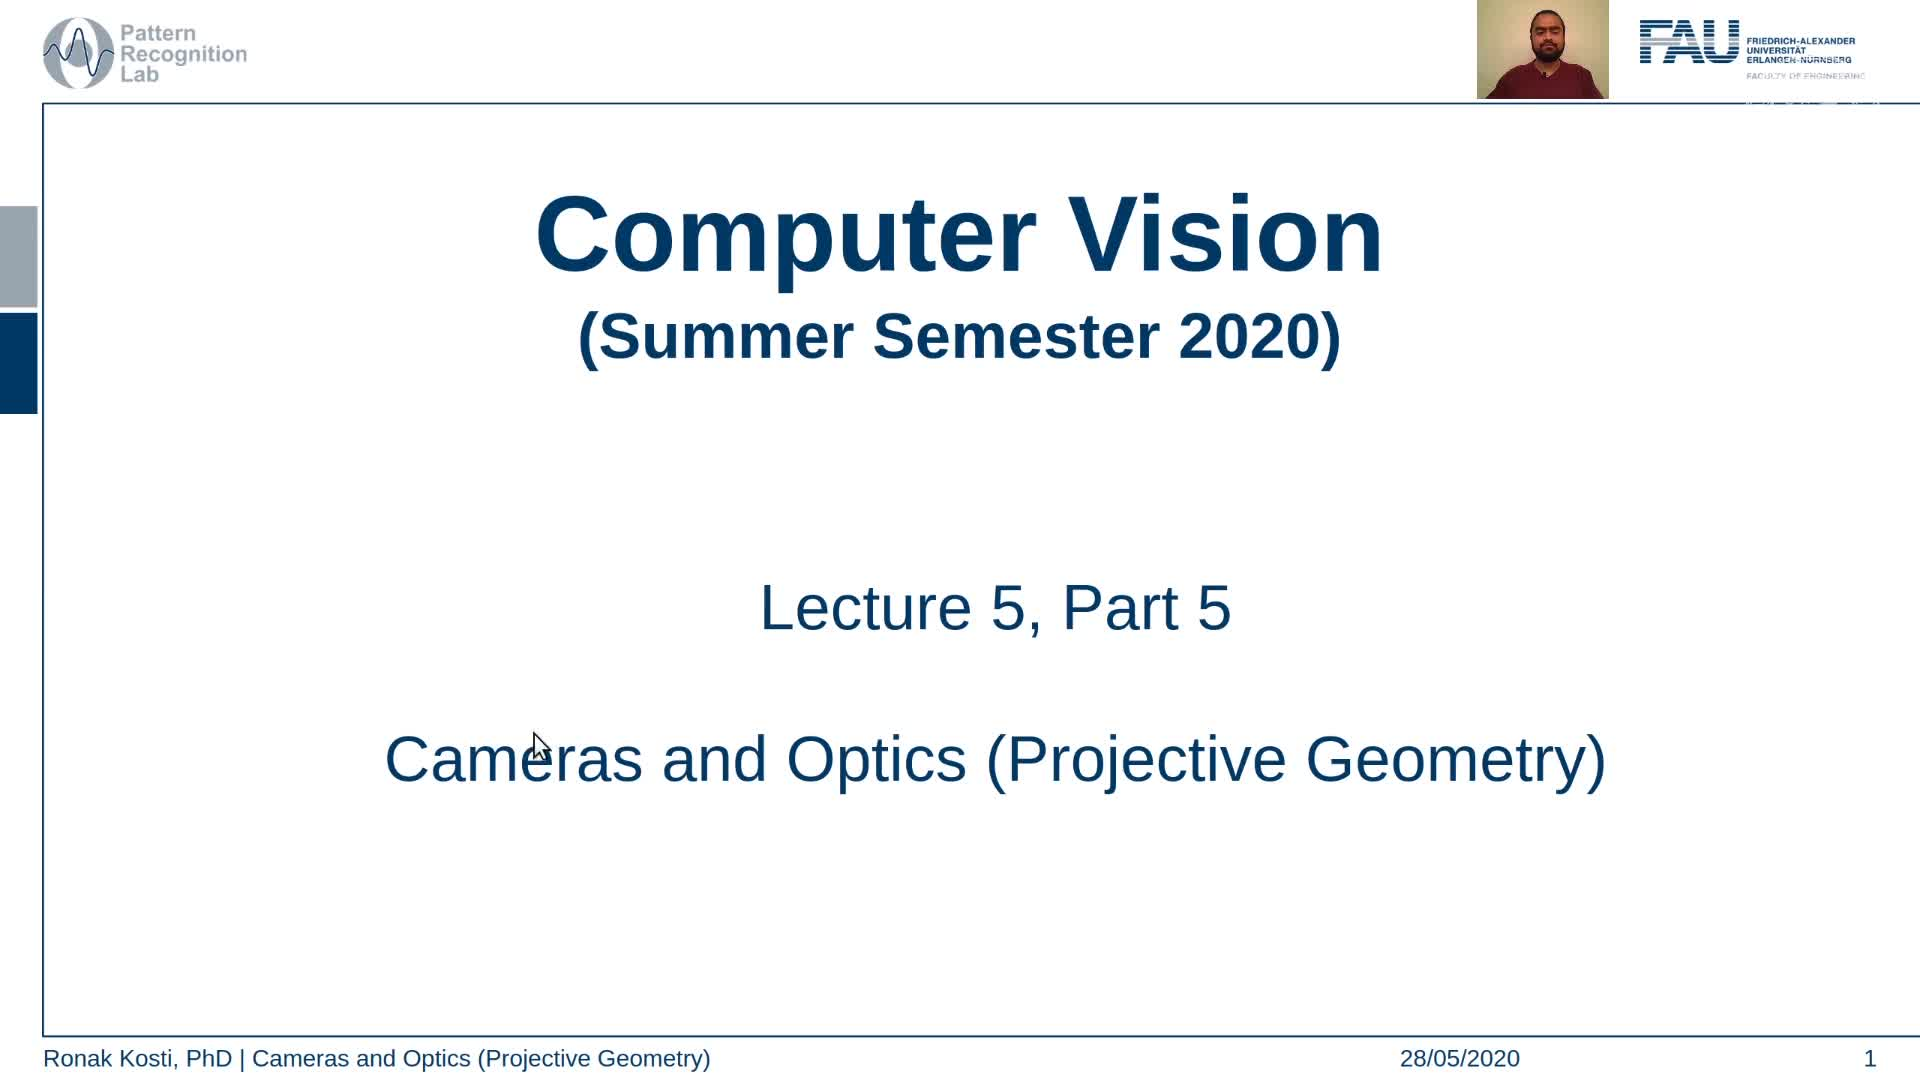 Cameras and Optics - Projective Geometry (Lecture 5, Part 5) preview image